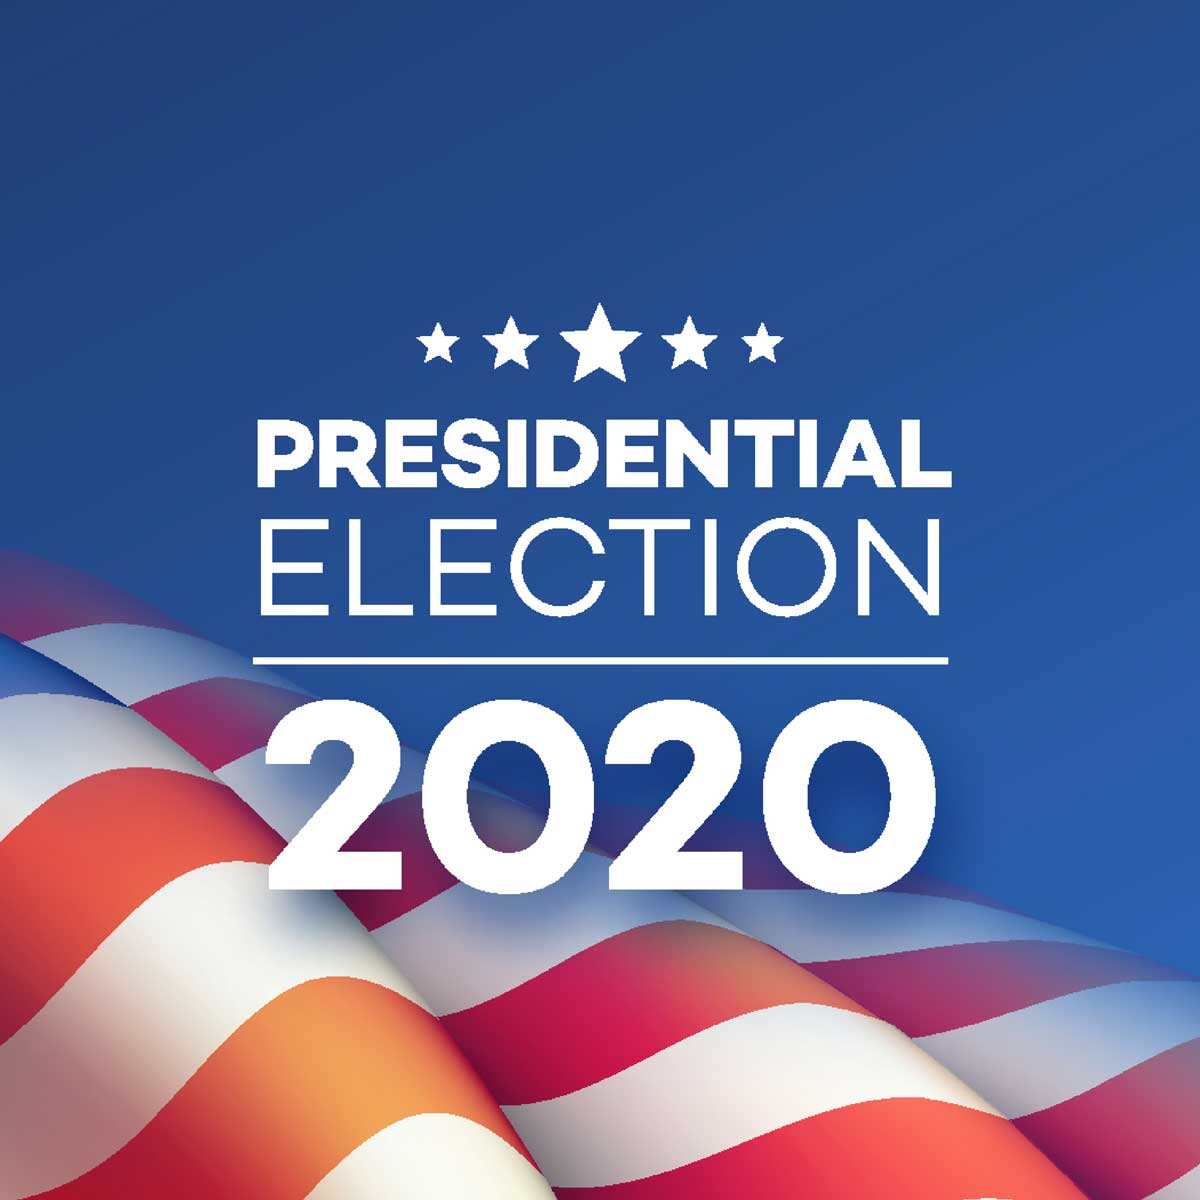 American Presidential Election 2020 background design